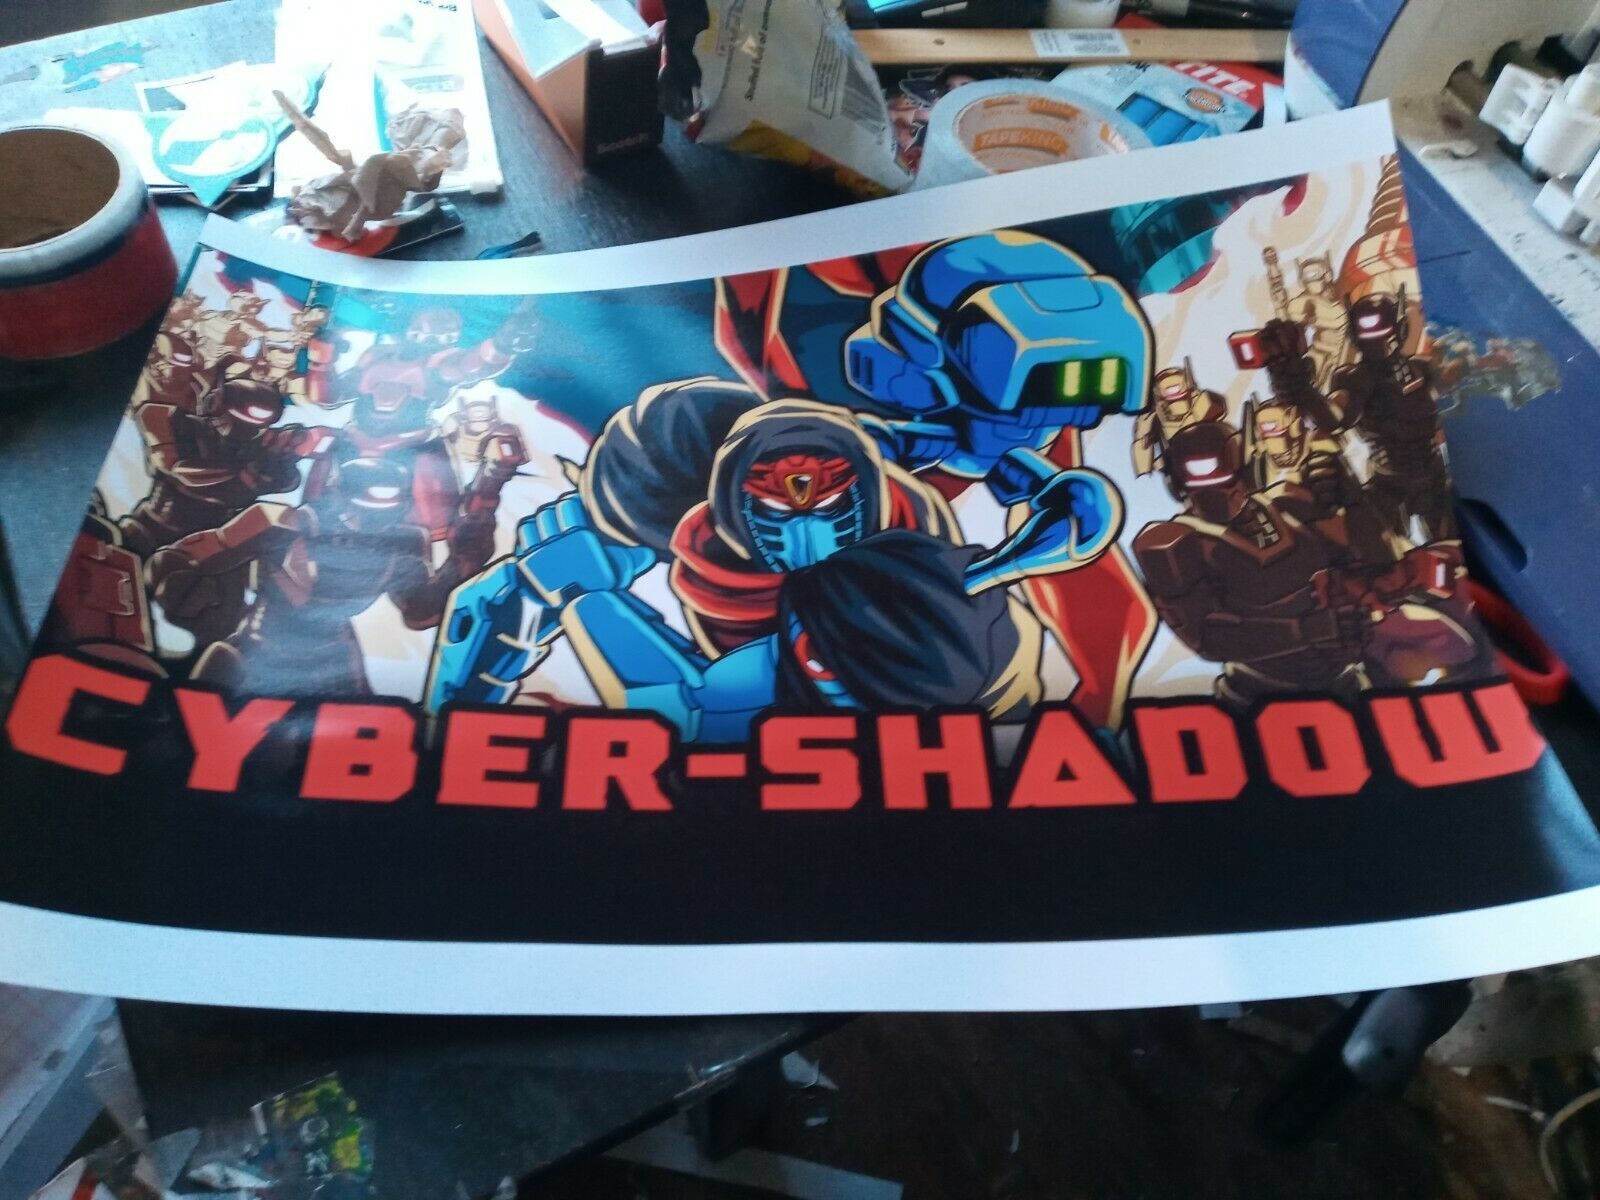 Primary image for cyber shadow nintendo switch poster